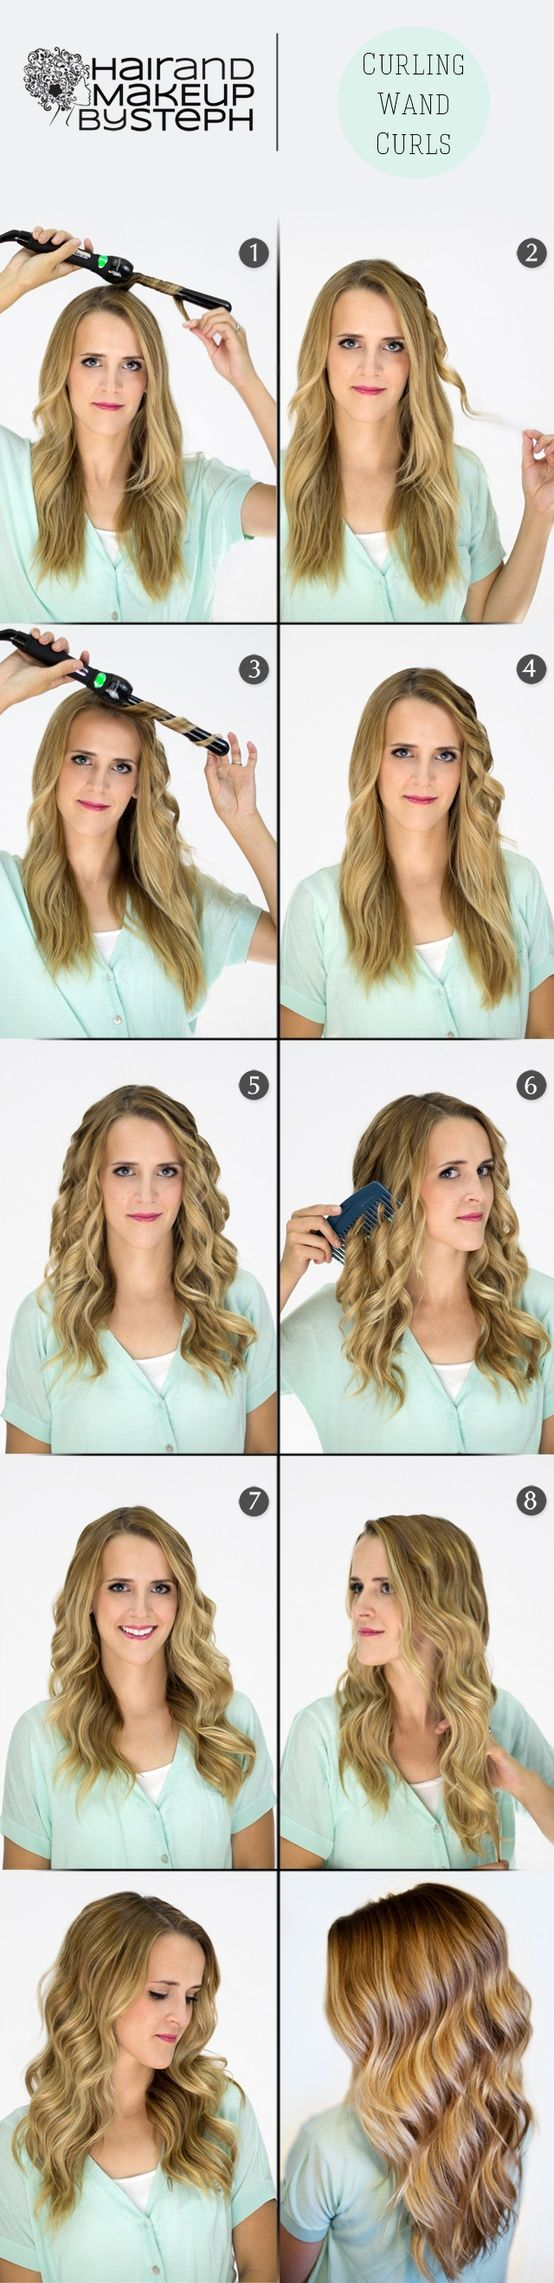 Curling Wand Waves Hair Pinterest Curls Wands And